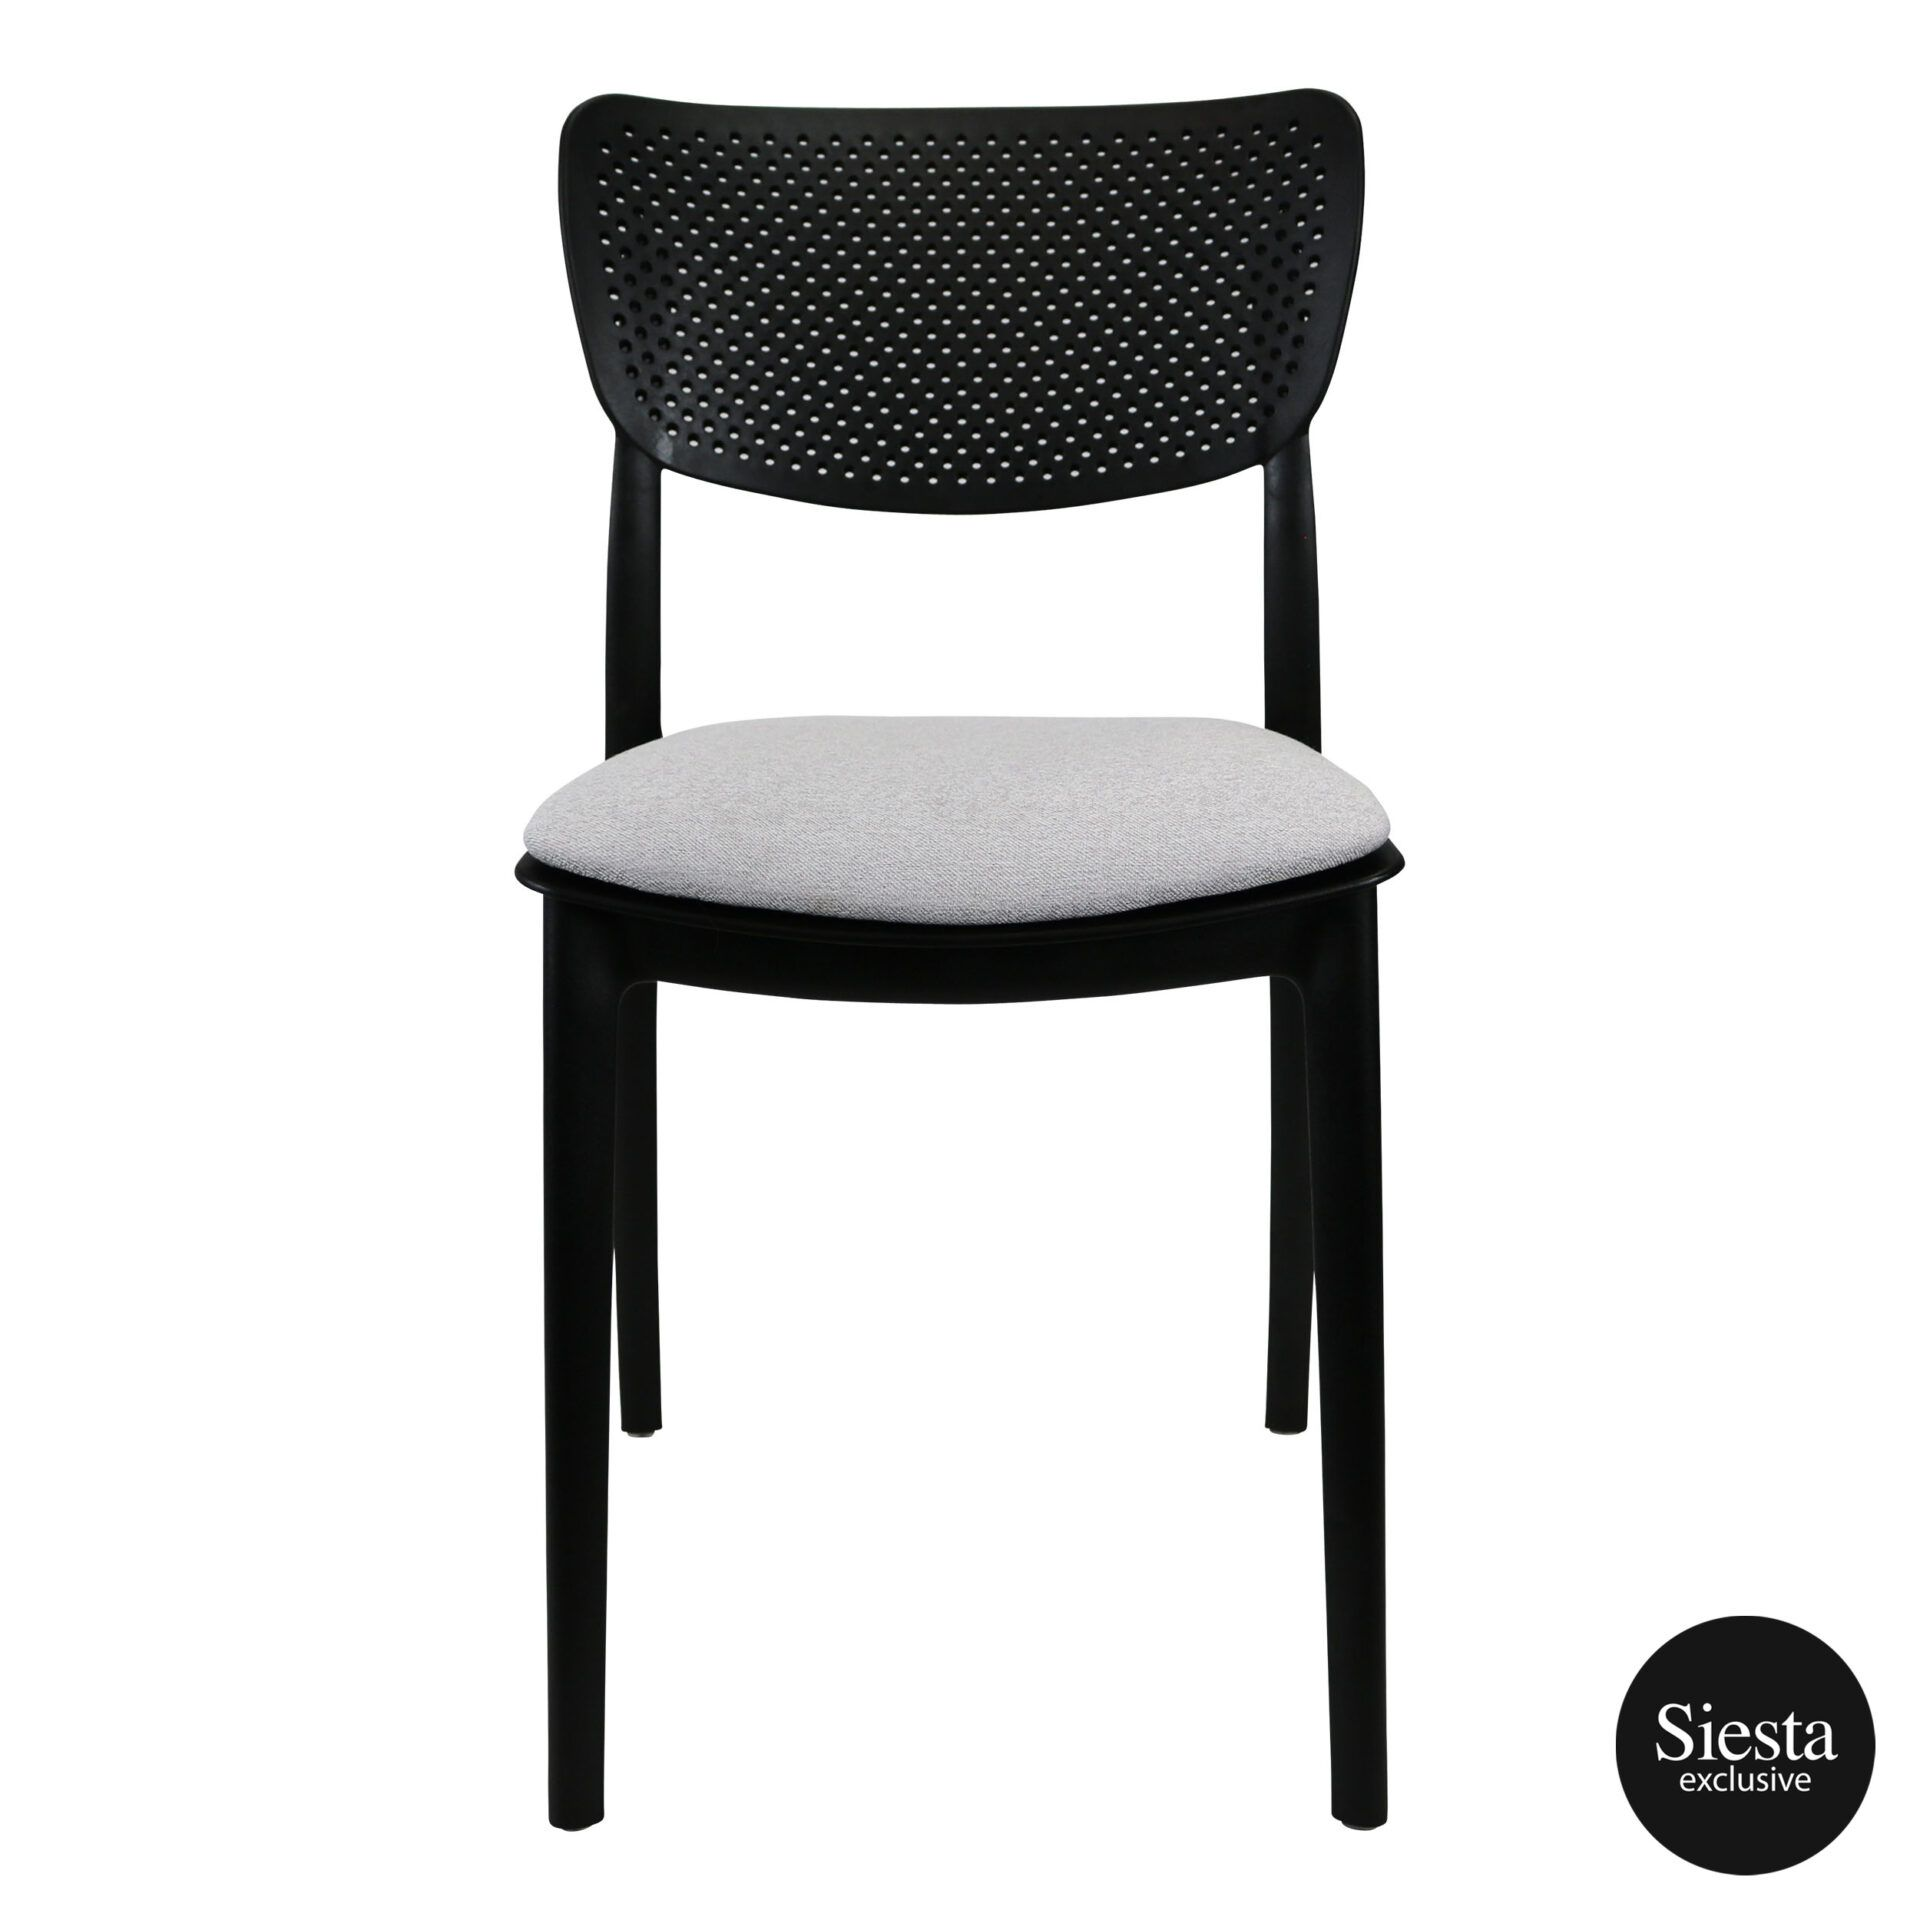 lucy chair black c1